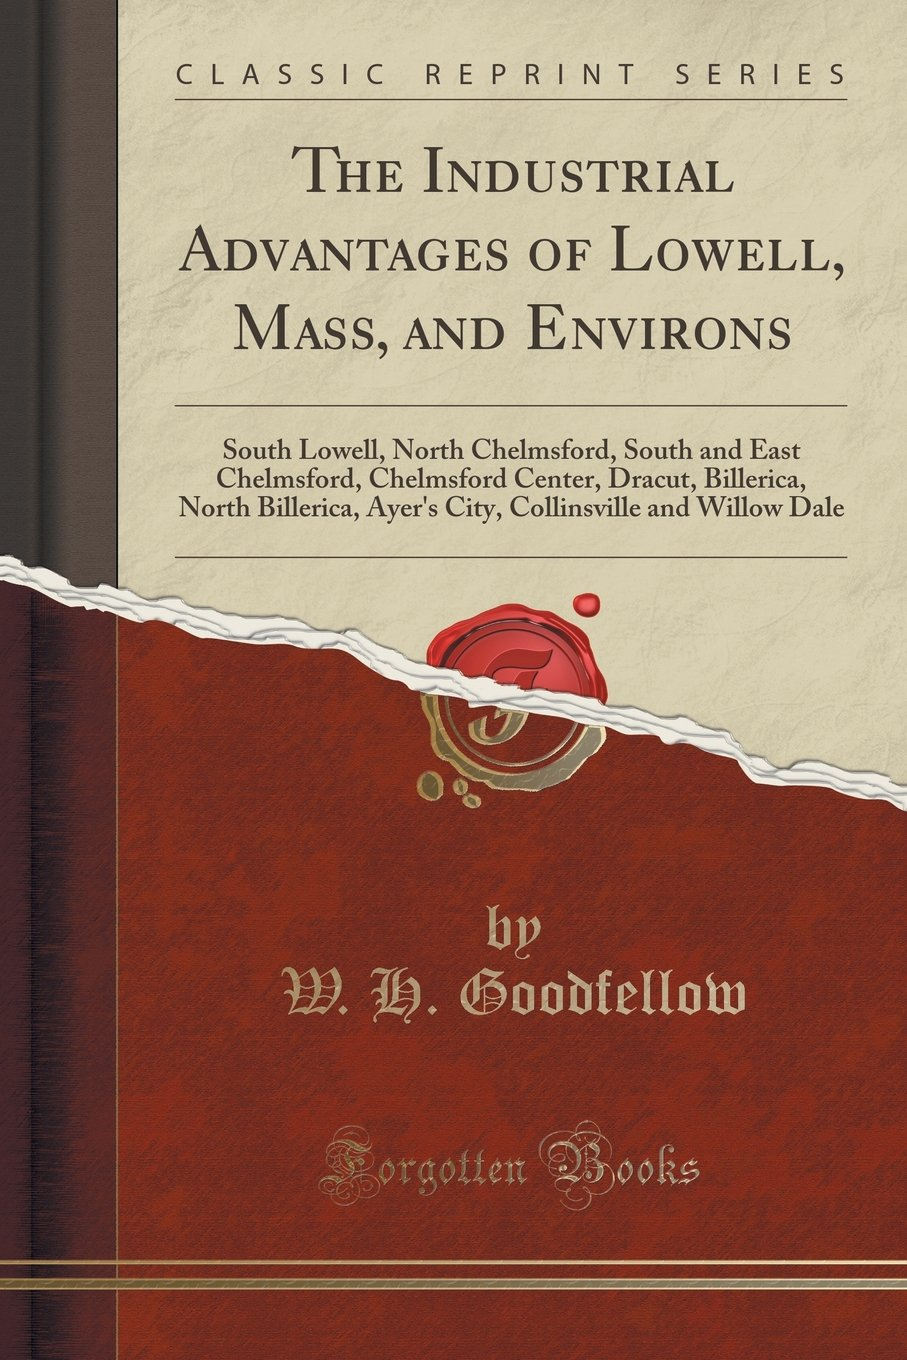 Download The Industrial Advantages of Lowell, Mass, and Environs: South Lowell, North Chelmsford, South and East Chelmsford, Chelmsford Center, Dracut, ... and Willow Dale (Classic Reprint) PDF